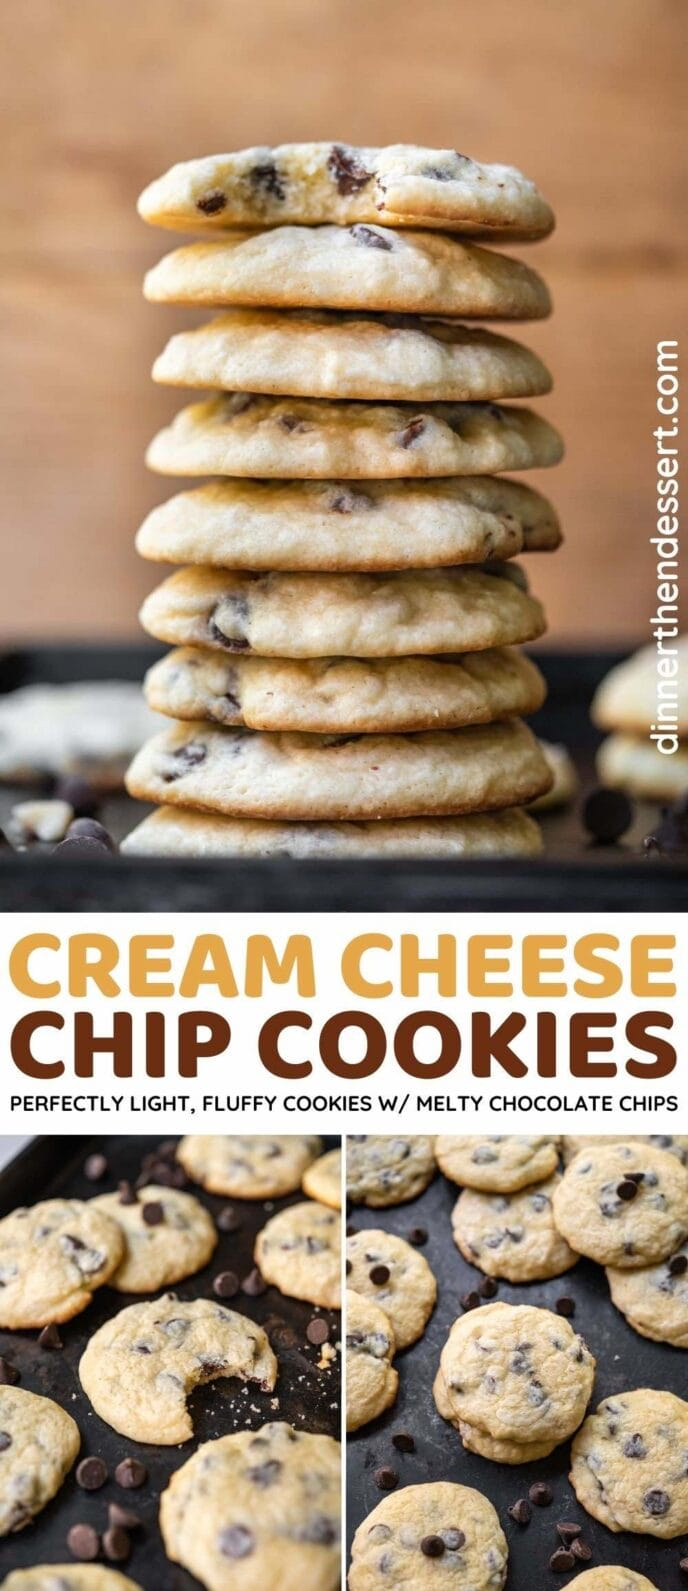 Cream Cheese Chocolate Chip Cookies collage